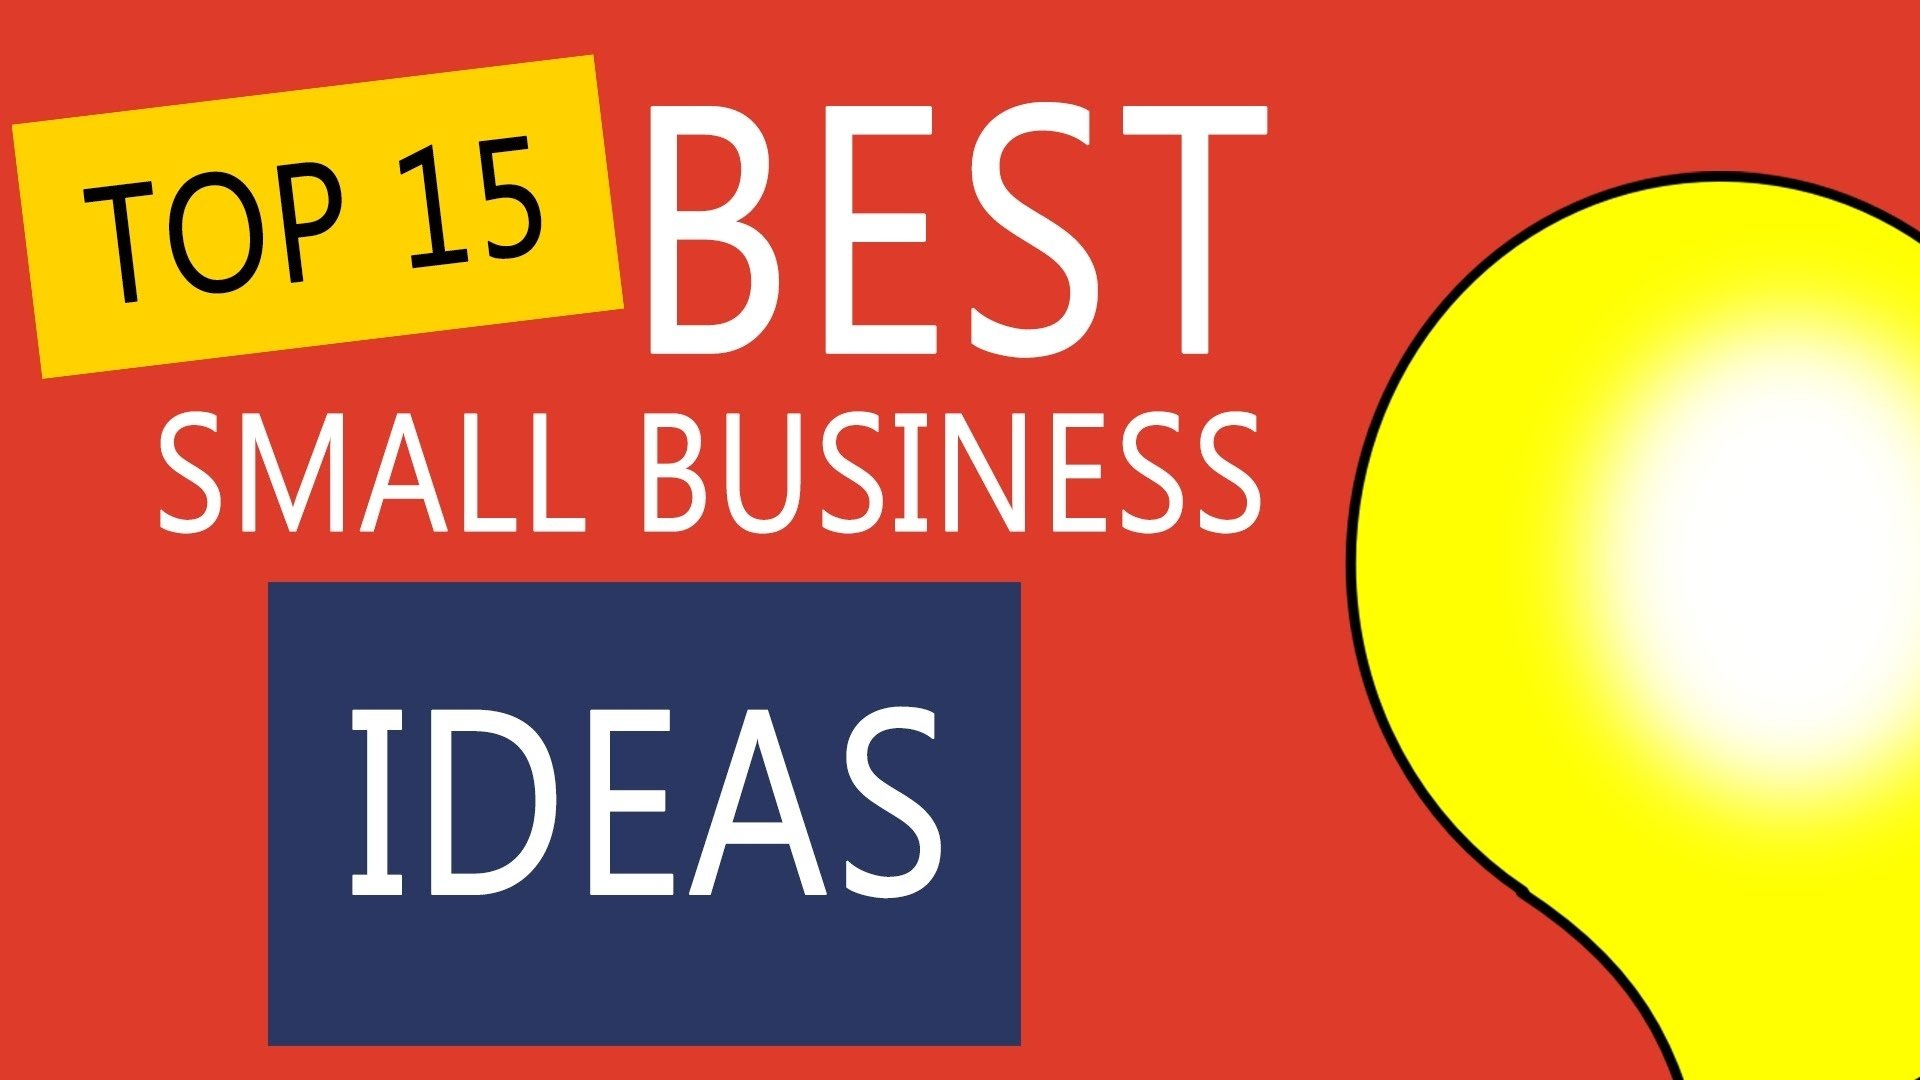 10 Stylish New Business Ideas To Start top 15 best small business ideas to start your own business youtube 3 2020